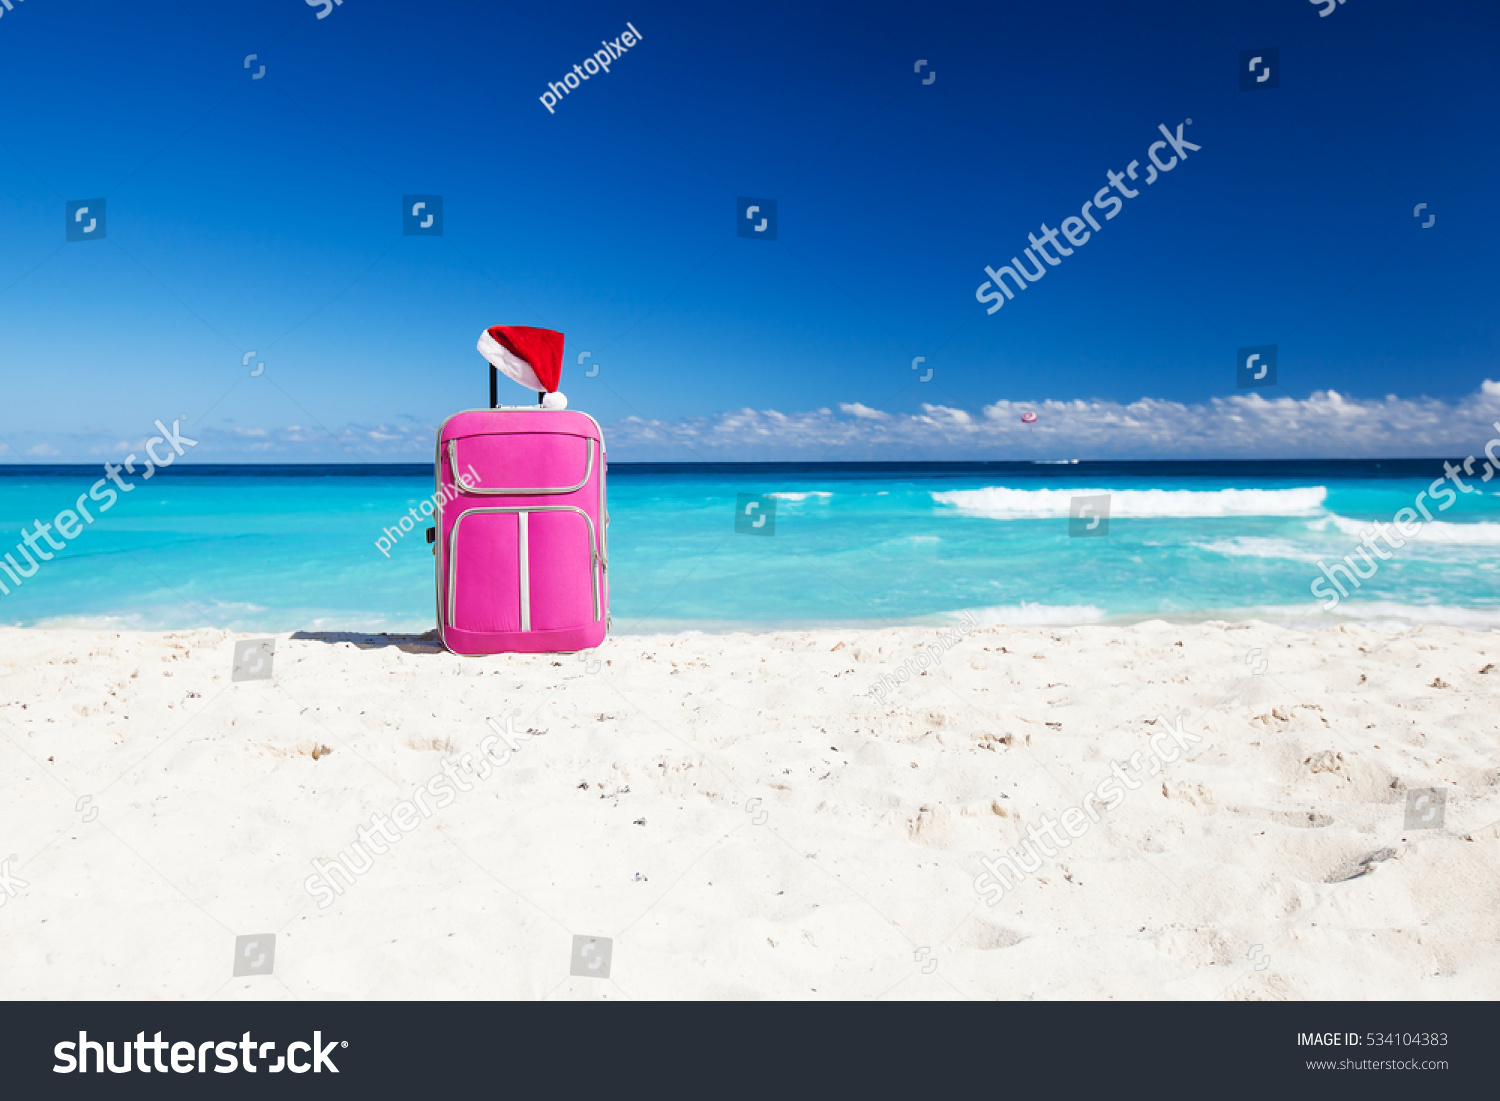 Christmas Santa Claus red hat on handle travel luggage with tropical beach and turquoise sea background New Year holidays concept